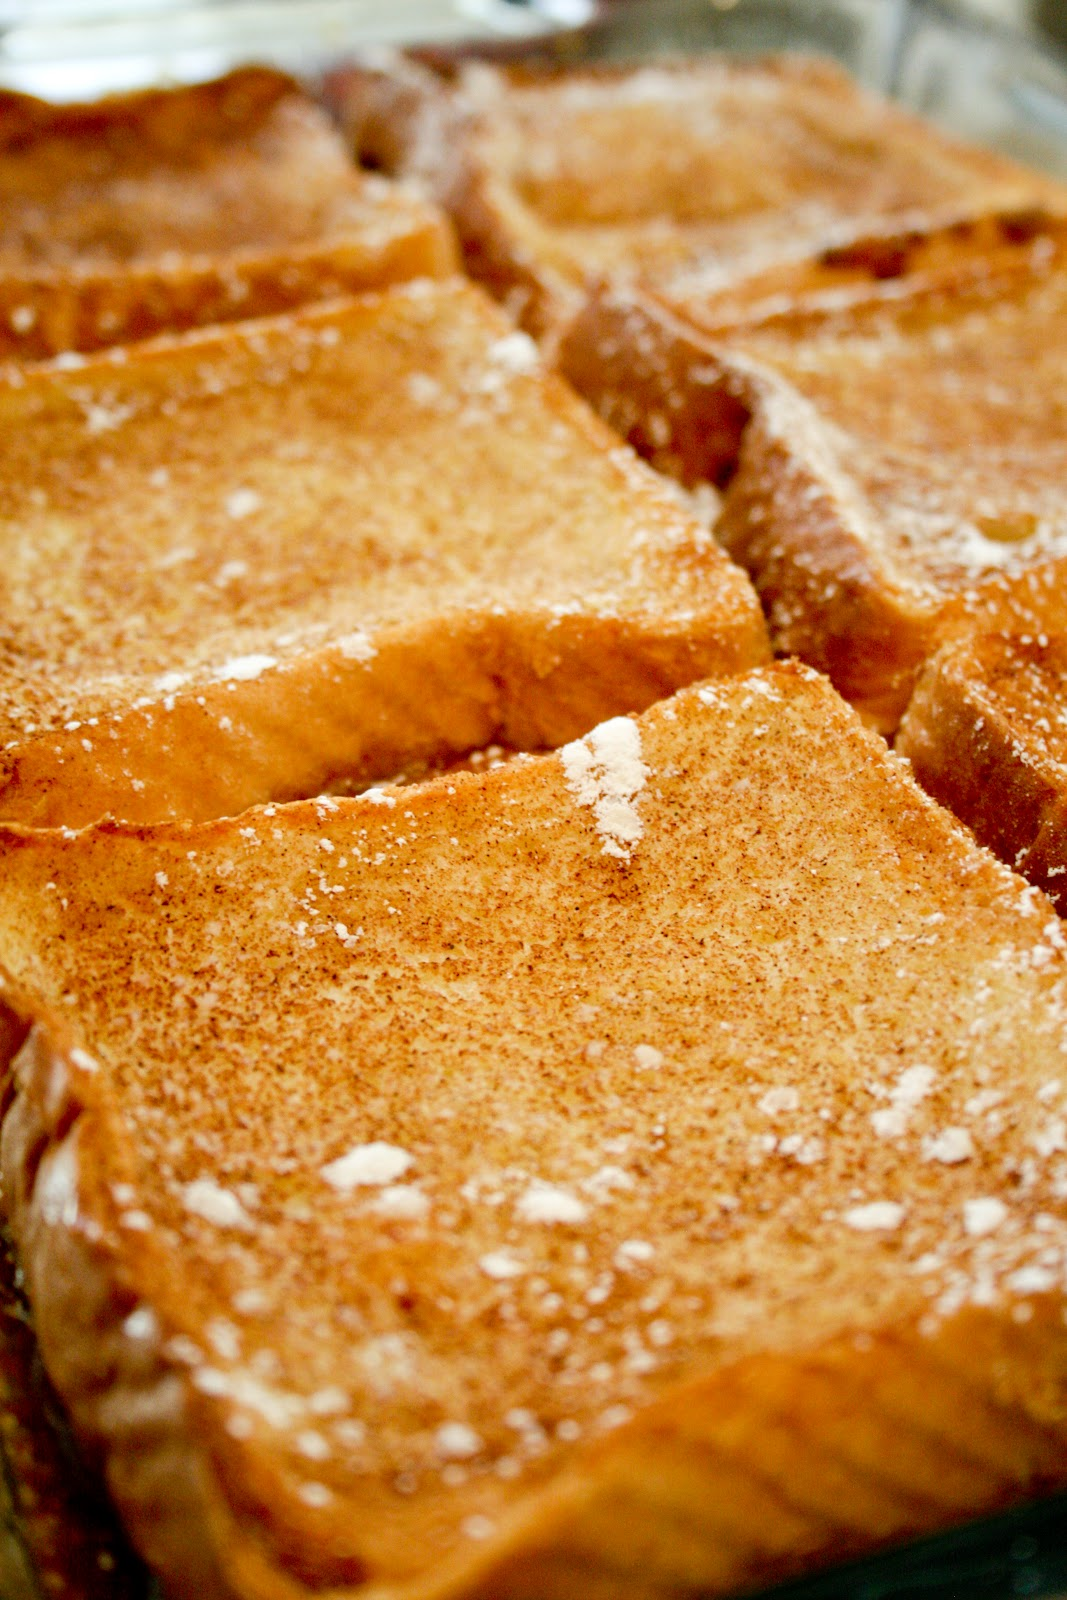 What's for Dinner?: Overnight French Toast Bake